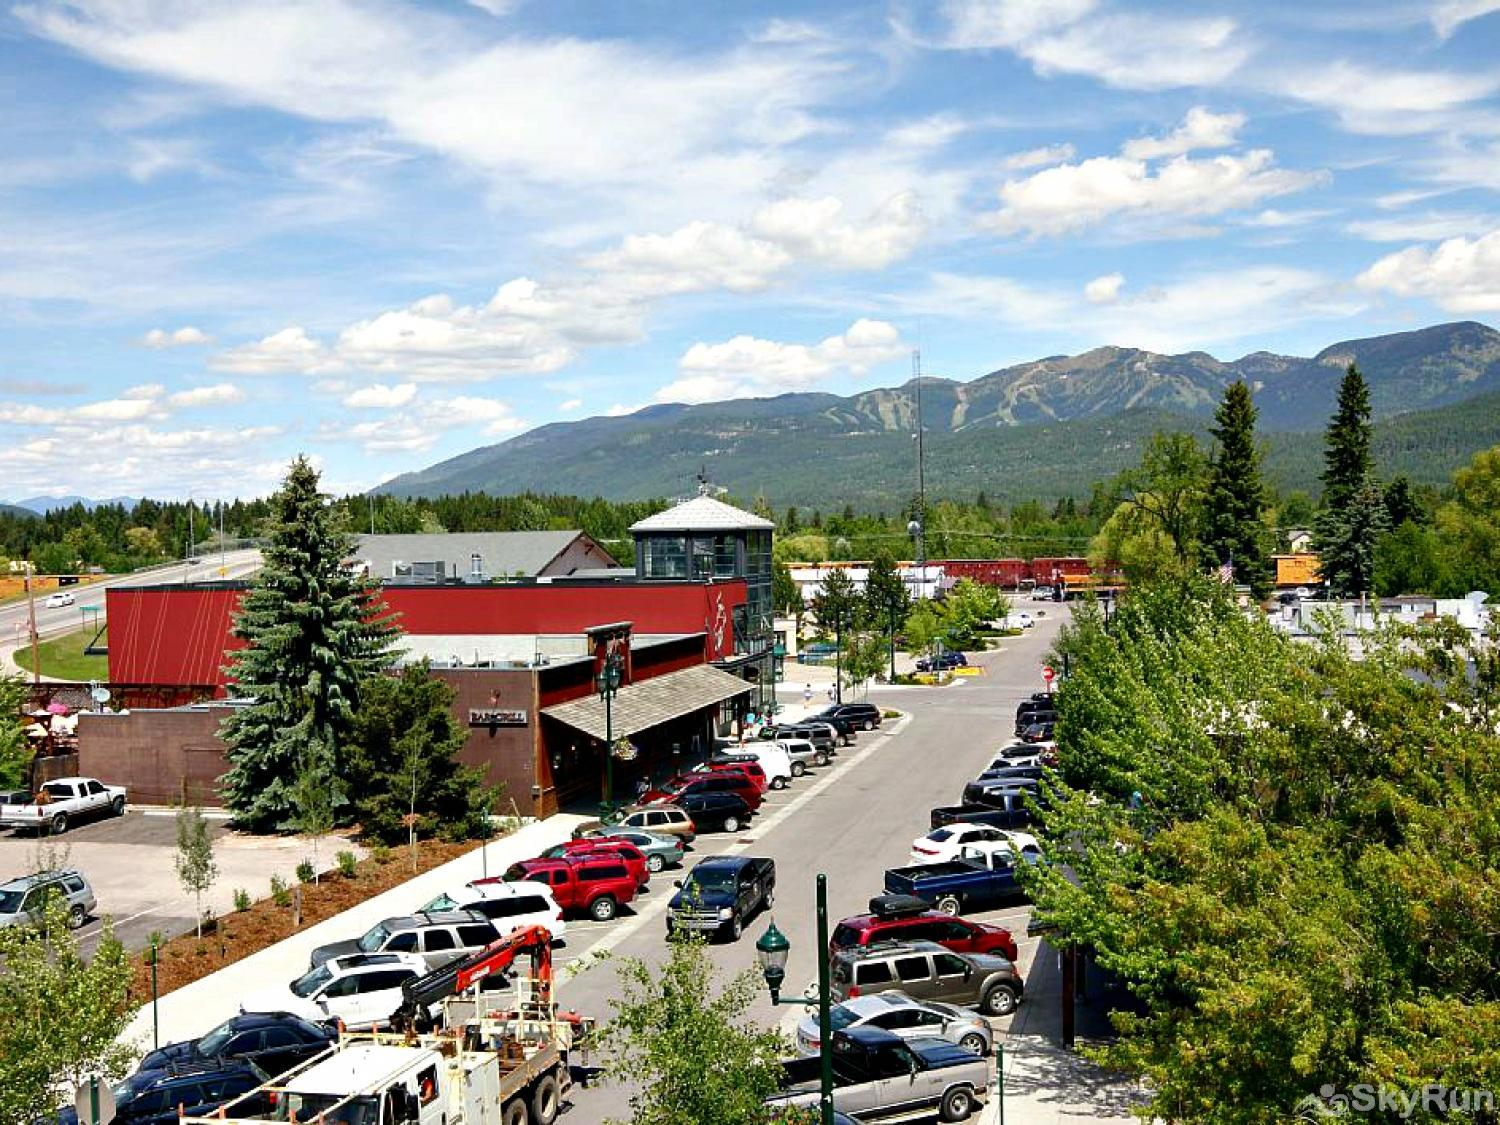 The Studio at Stillwater Mountain Lodge Downtown Whitefish has lots to do